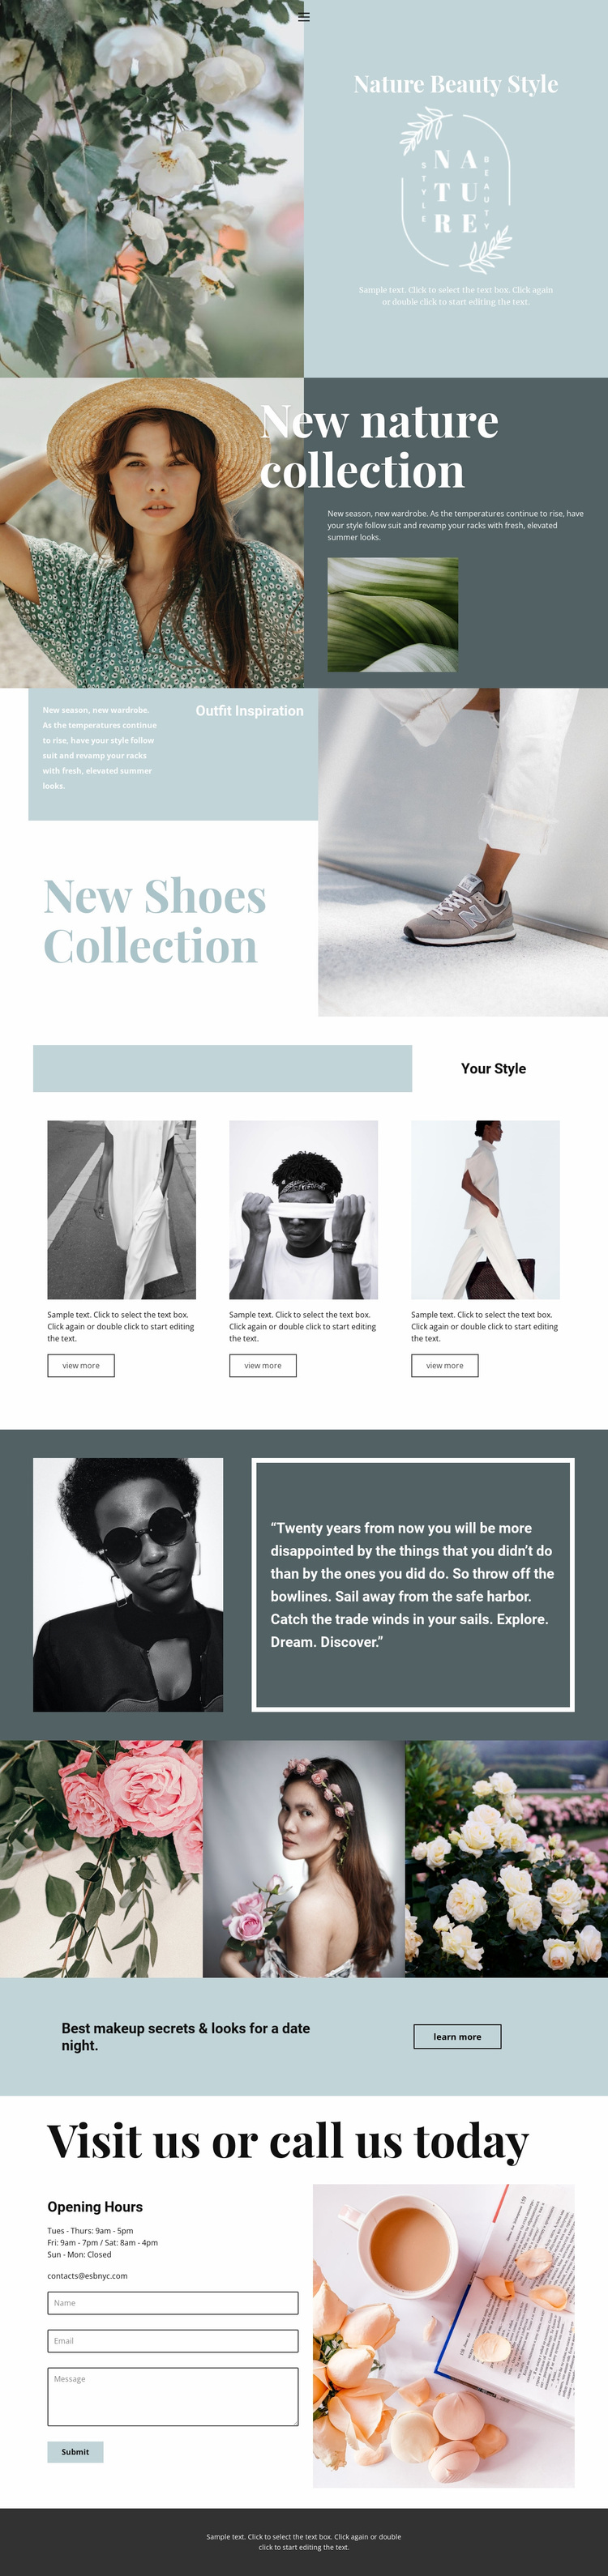 Nature collection Website Design